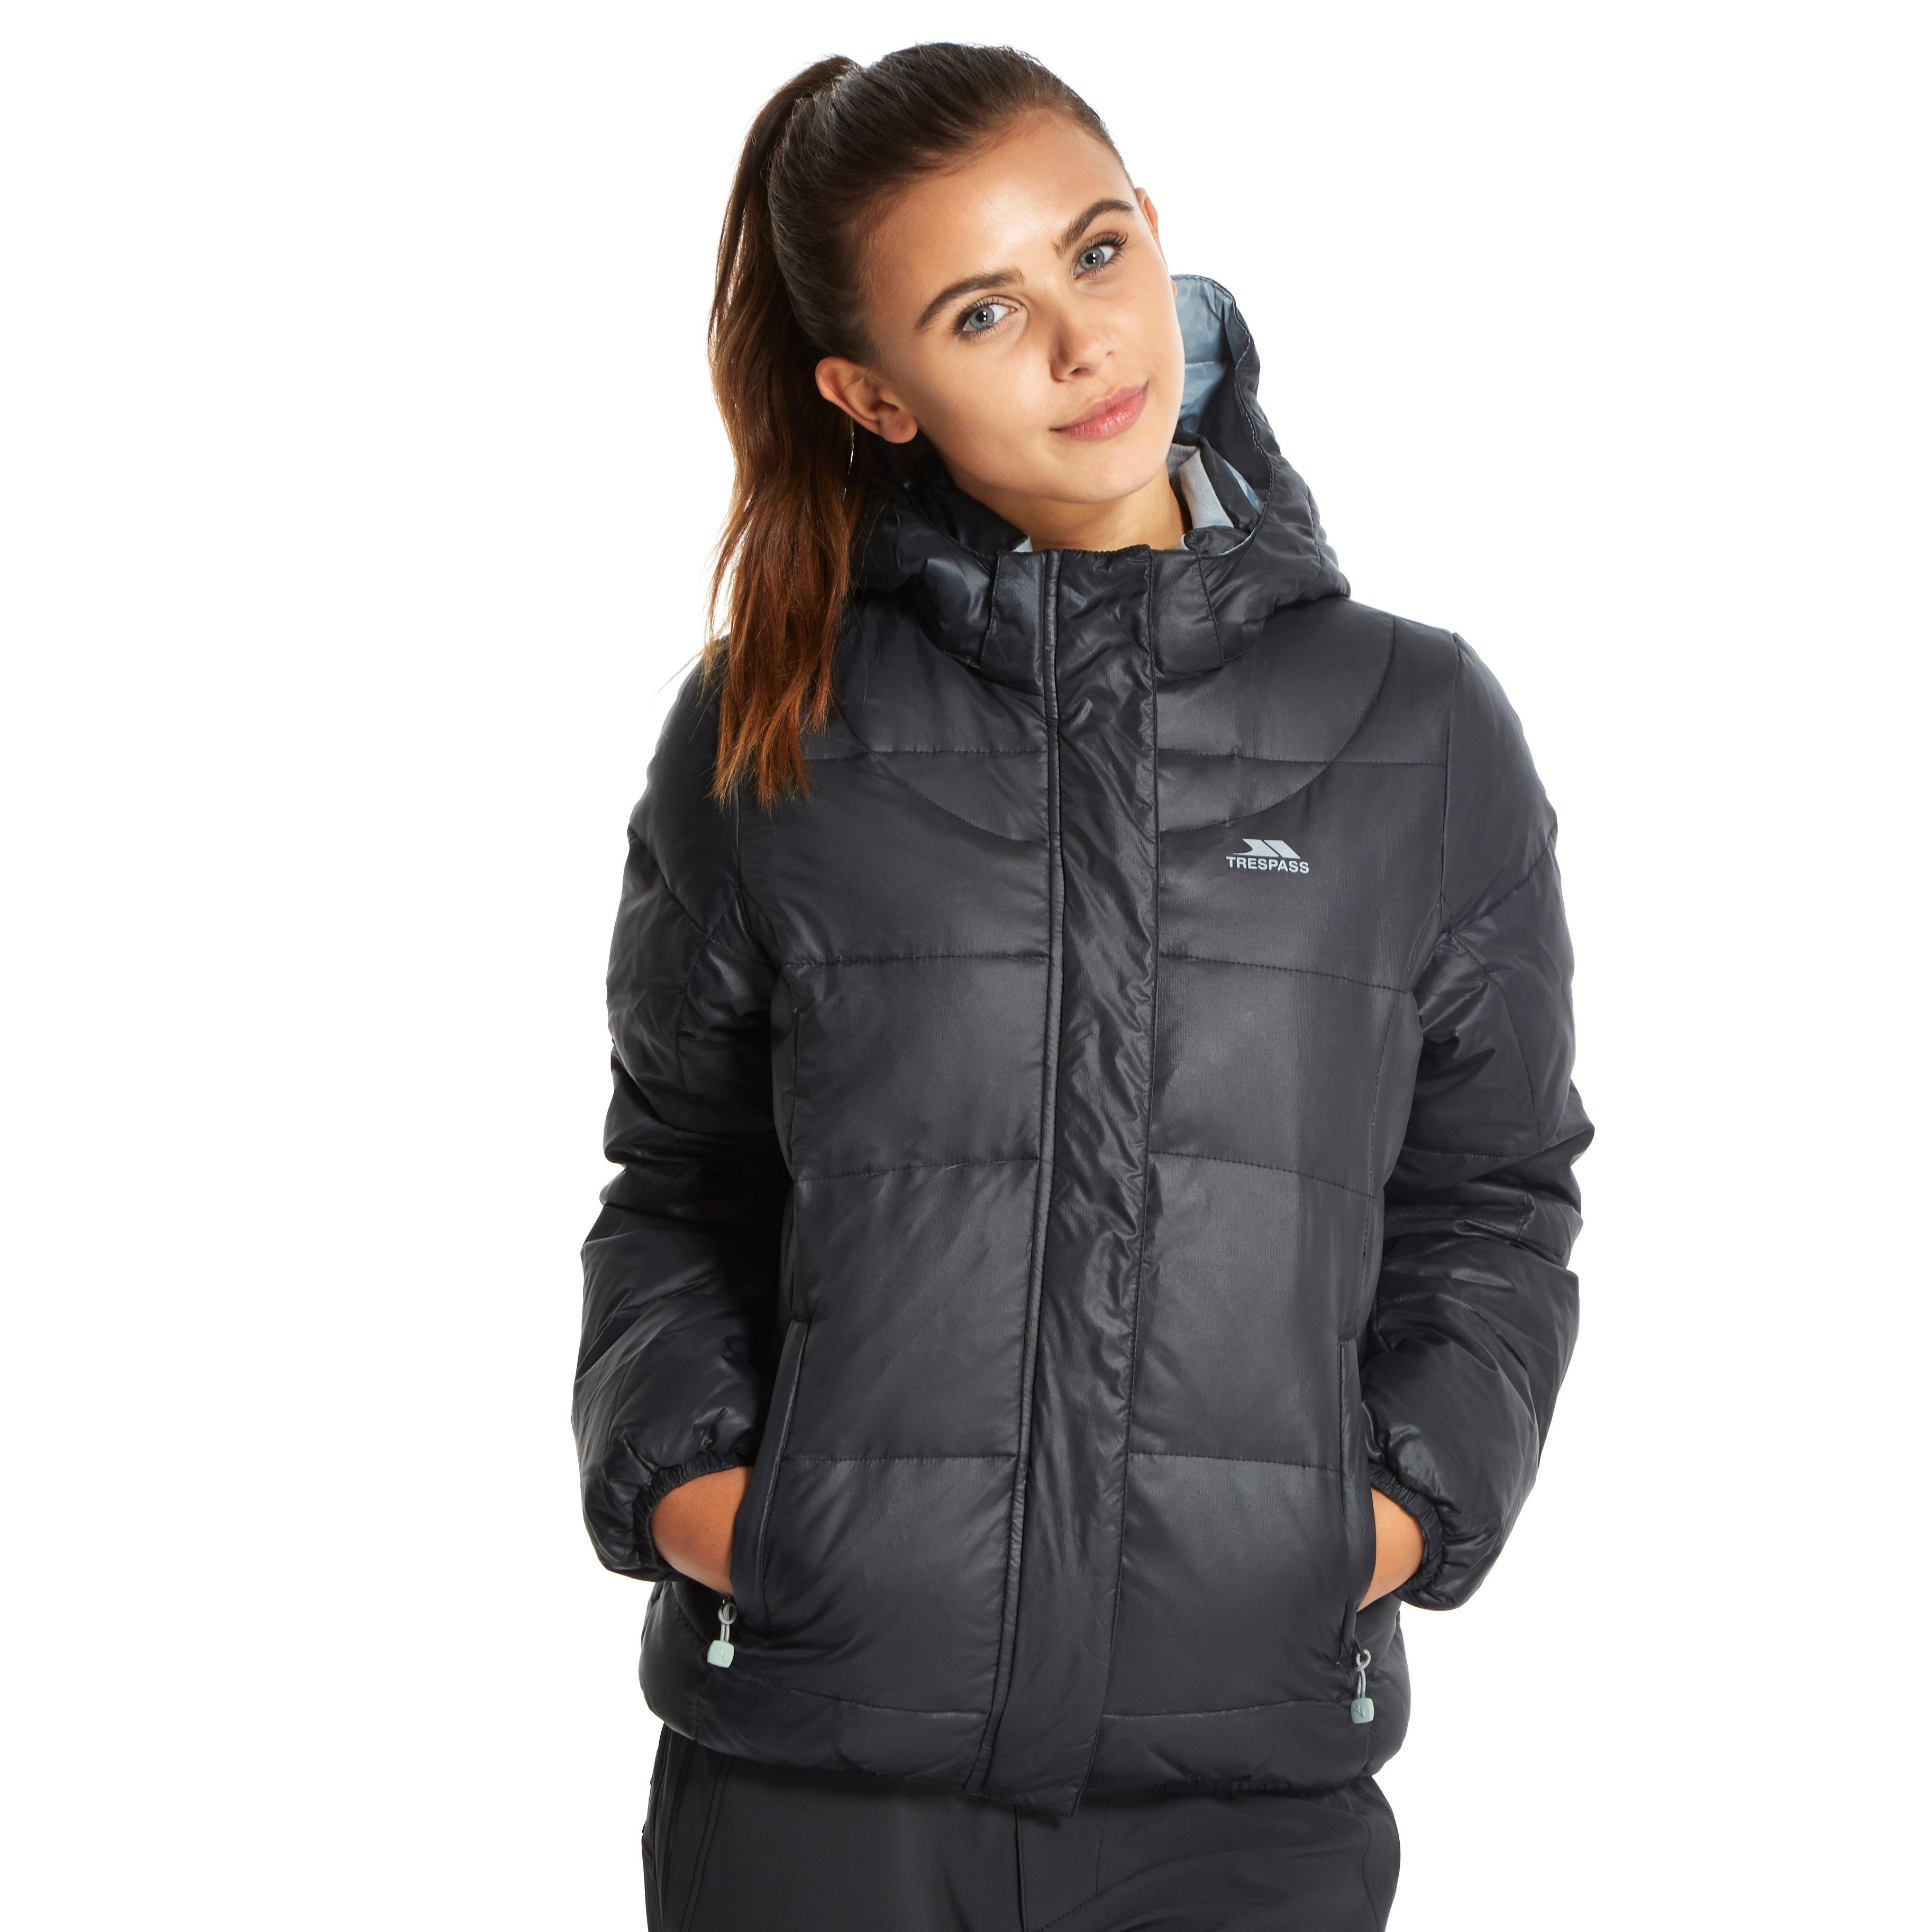 Black Puffer Jacket Women's | Gommap Blog